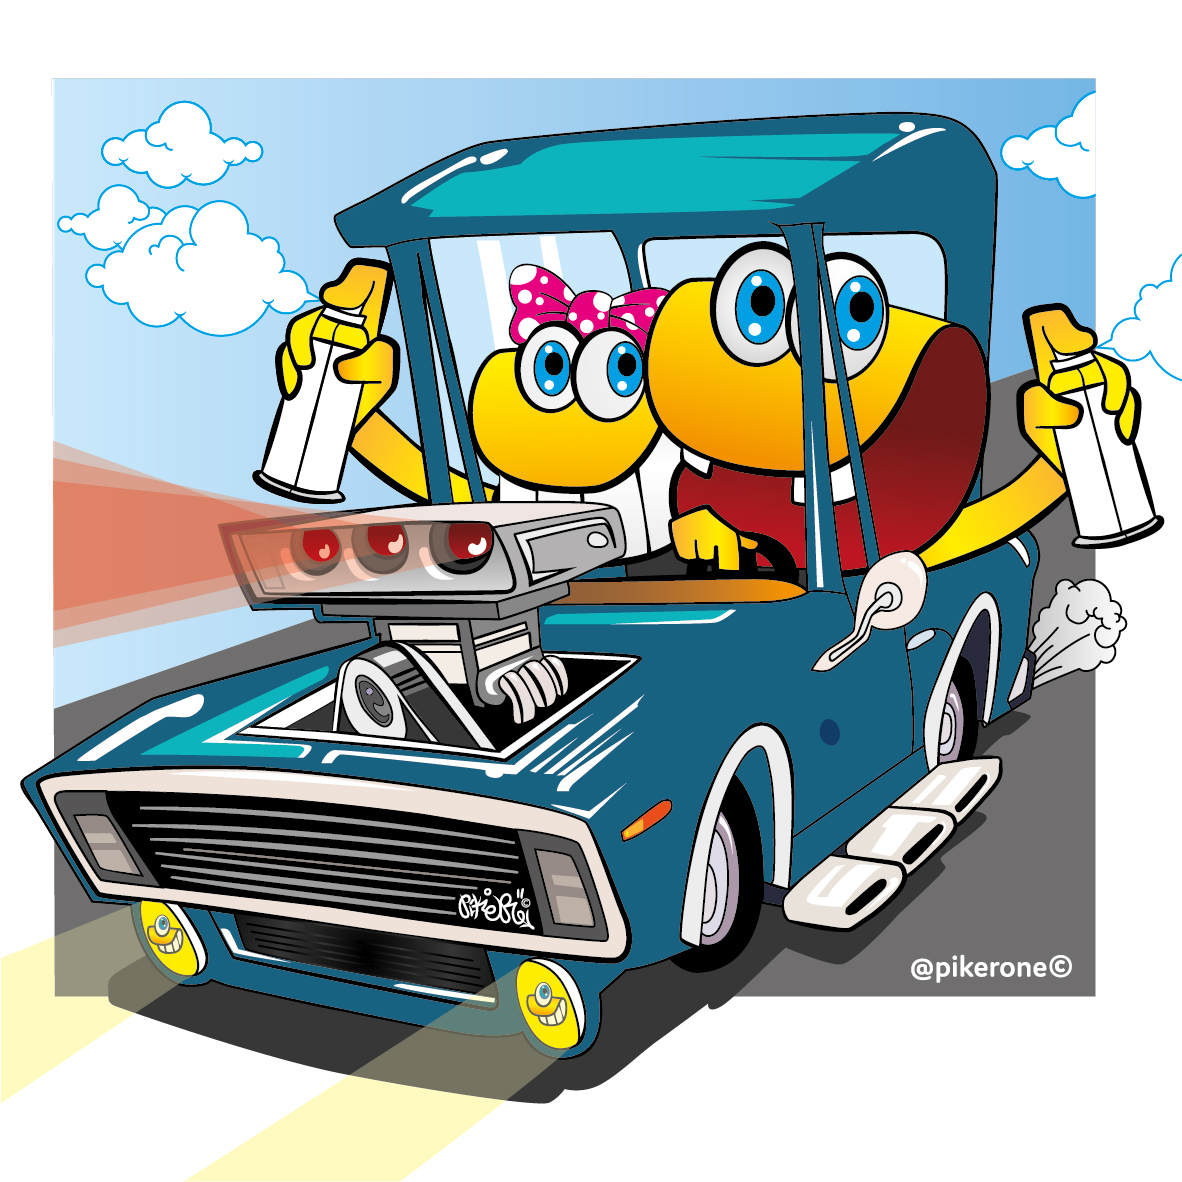 Clams ilustracion digital sport tunning car